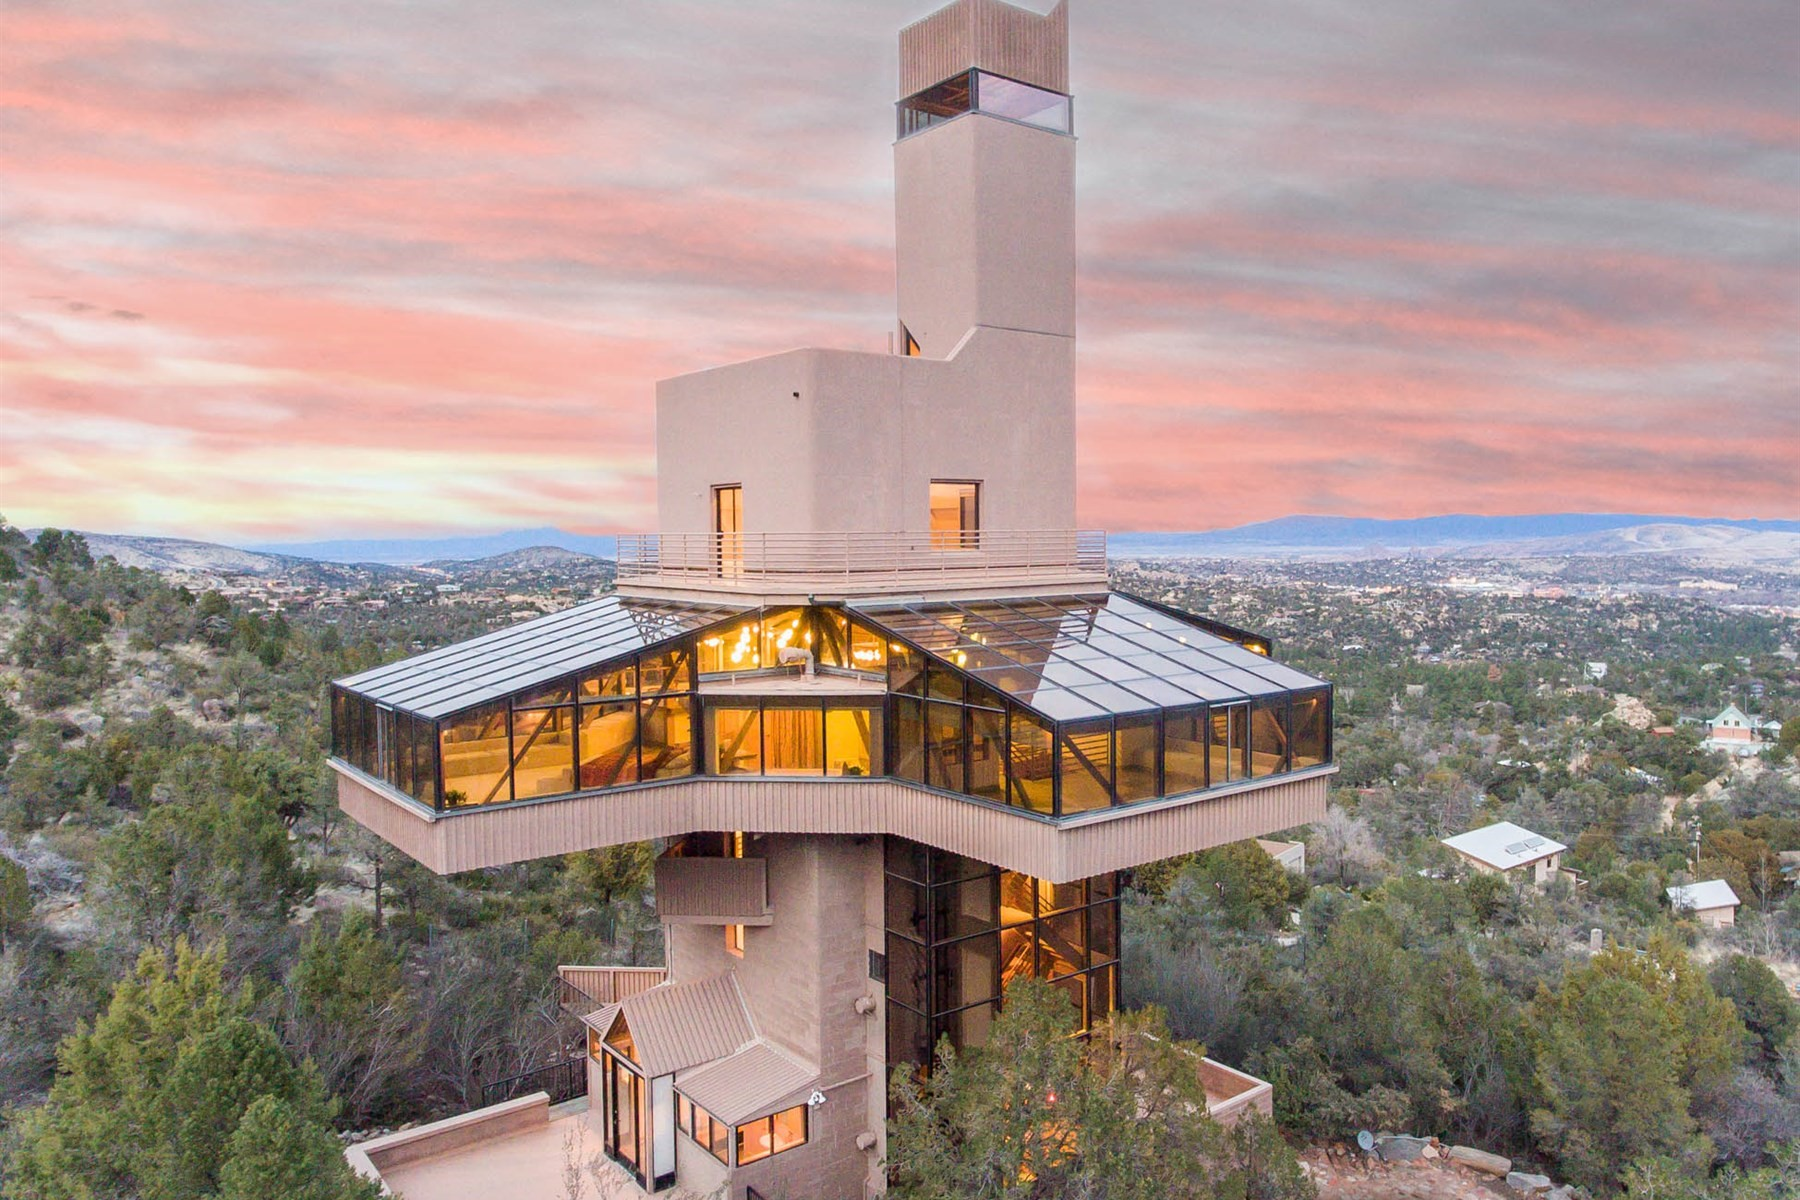 Casa Unifamiliar por un Venta en Falcon Nest is the world's tallest single-family house in Prescott 2365 Skyline Dr Prescott, Arizona, 86303 Estados Unidos